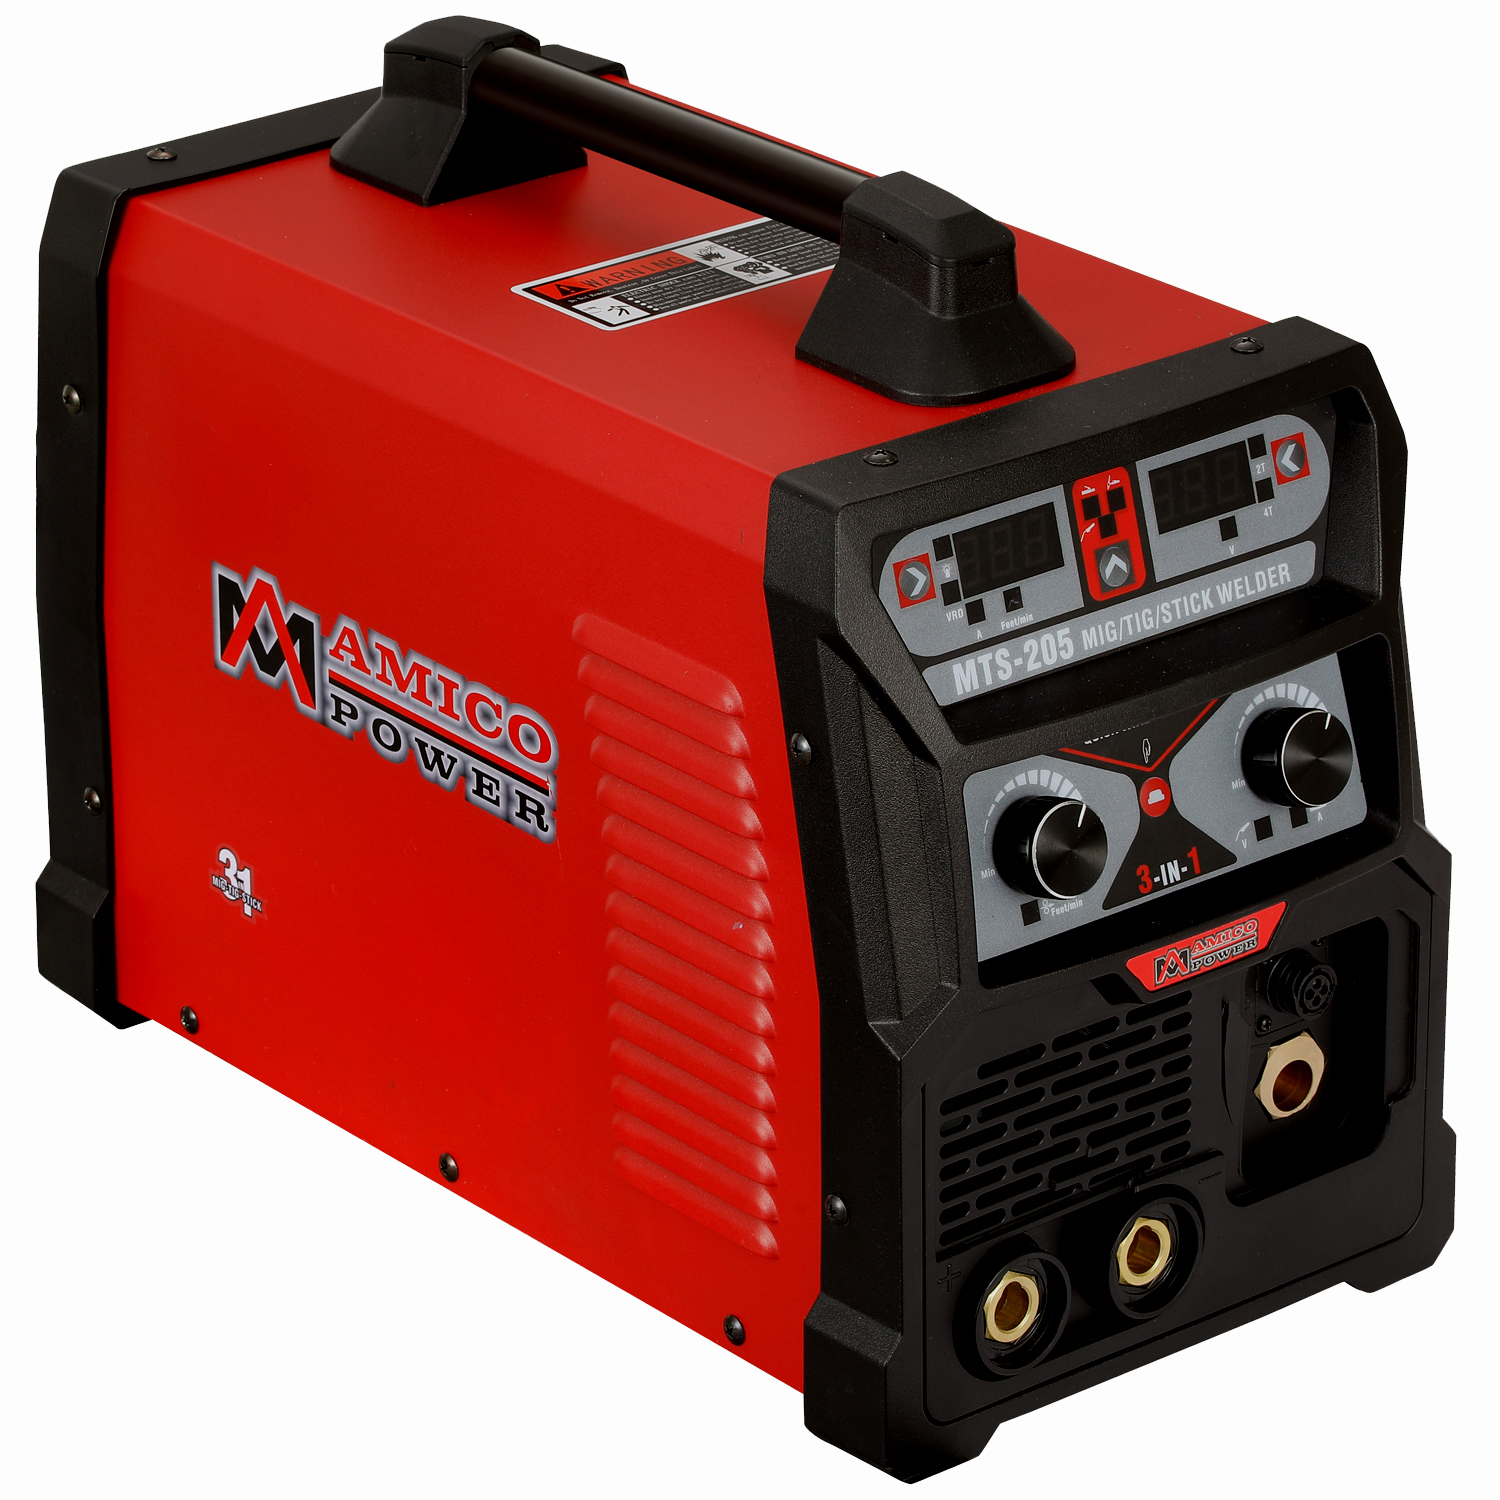 MTS-205, 205 Amp MIG TIG-Torch Stick Arc Combo Welder, Weld Aluminum, 110/230V Dual Voltage Welding